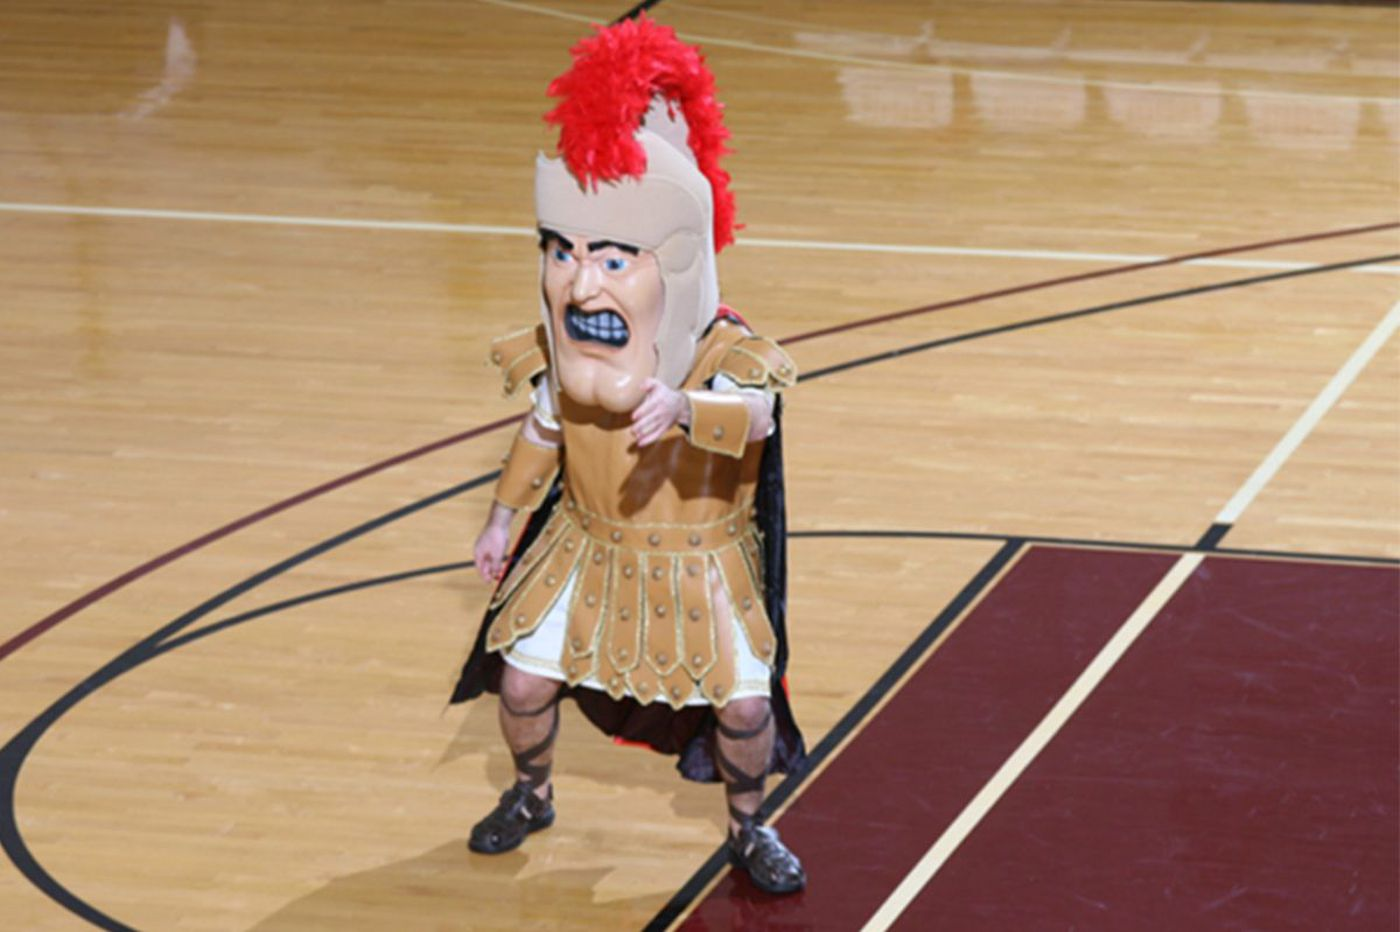 A new college crusade aims at controversial mascots